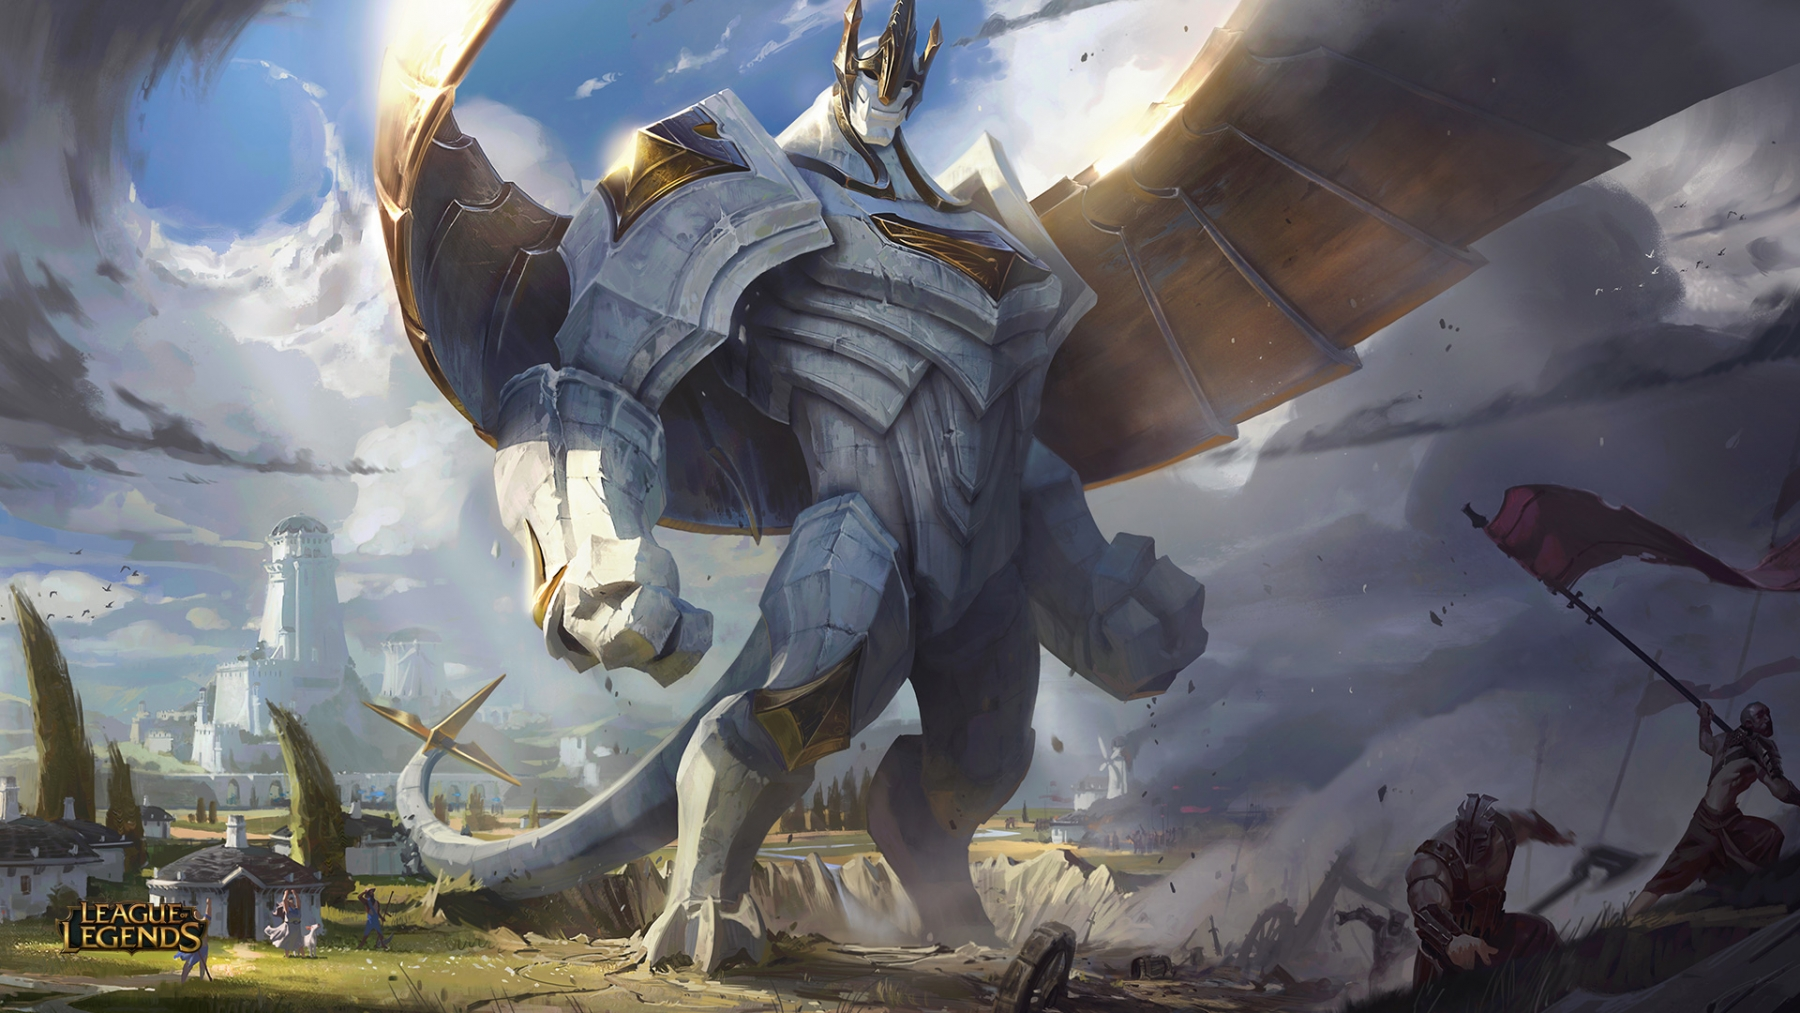 League Of Legends Hd Wallpapers And Background Images Yl